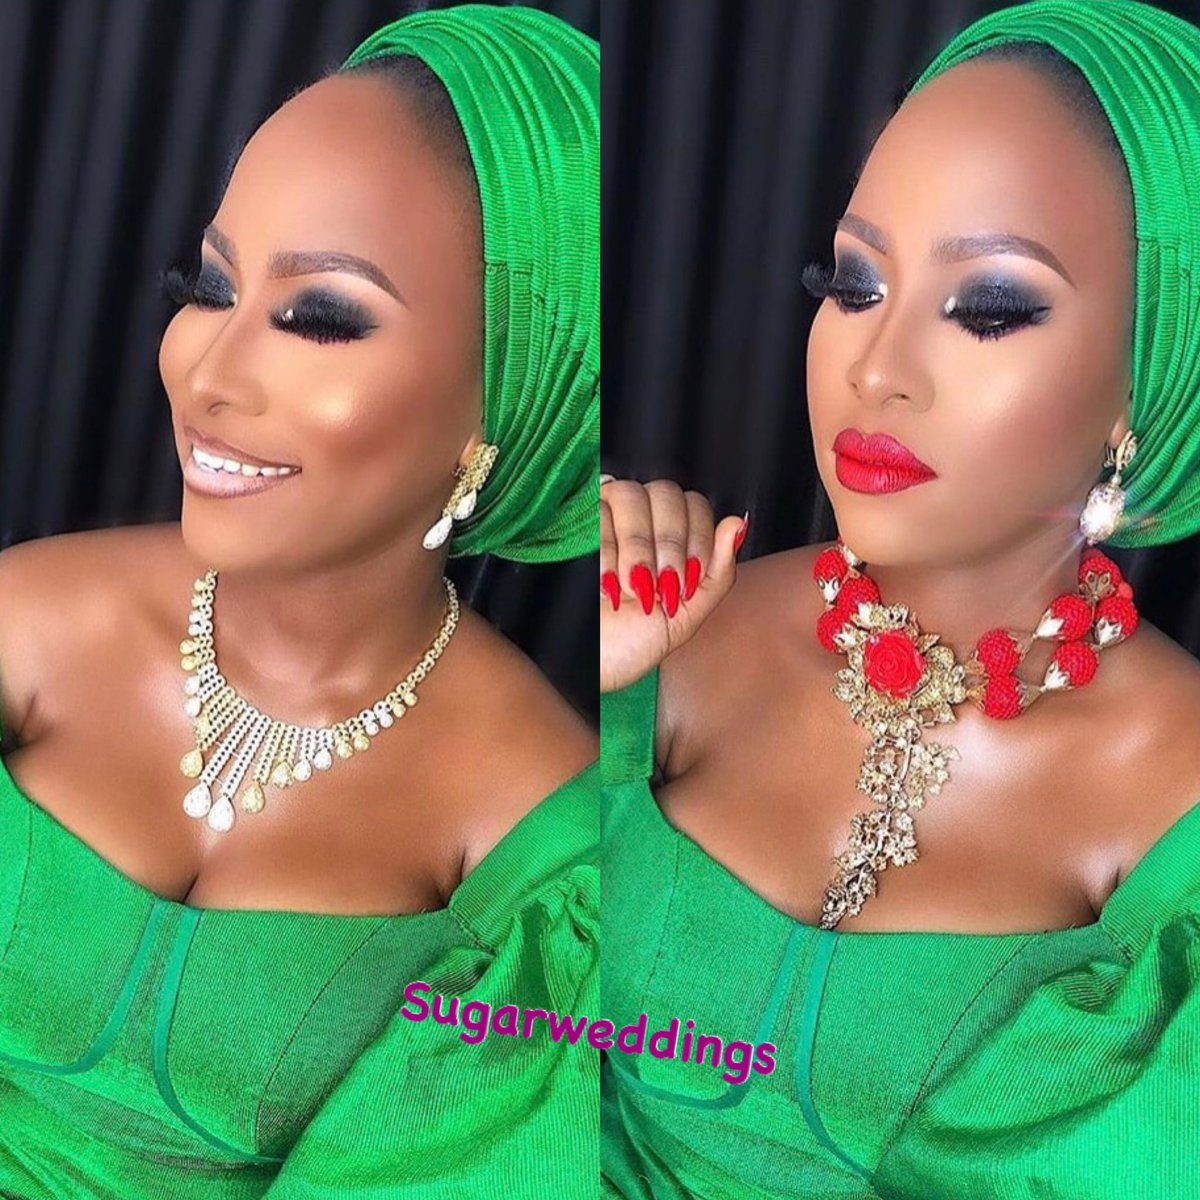 Team Nude or Red? . . Makeup: @dstrandz  #weddingmakeup #weddingmoments #weddingvibes #dailyweddinginspiration #weddinginnigeriapic.twitter.com/GjlZ5QwLJx